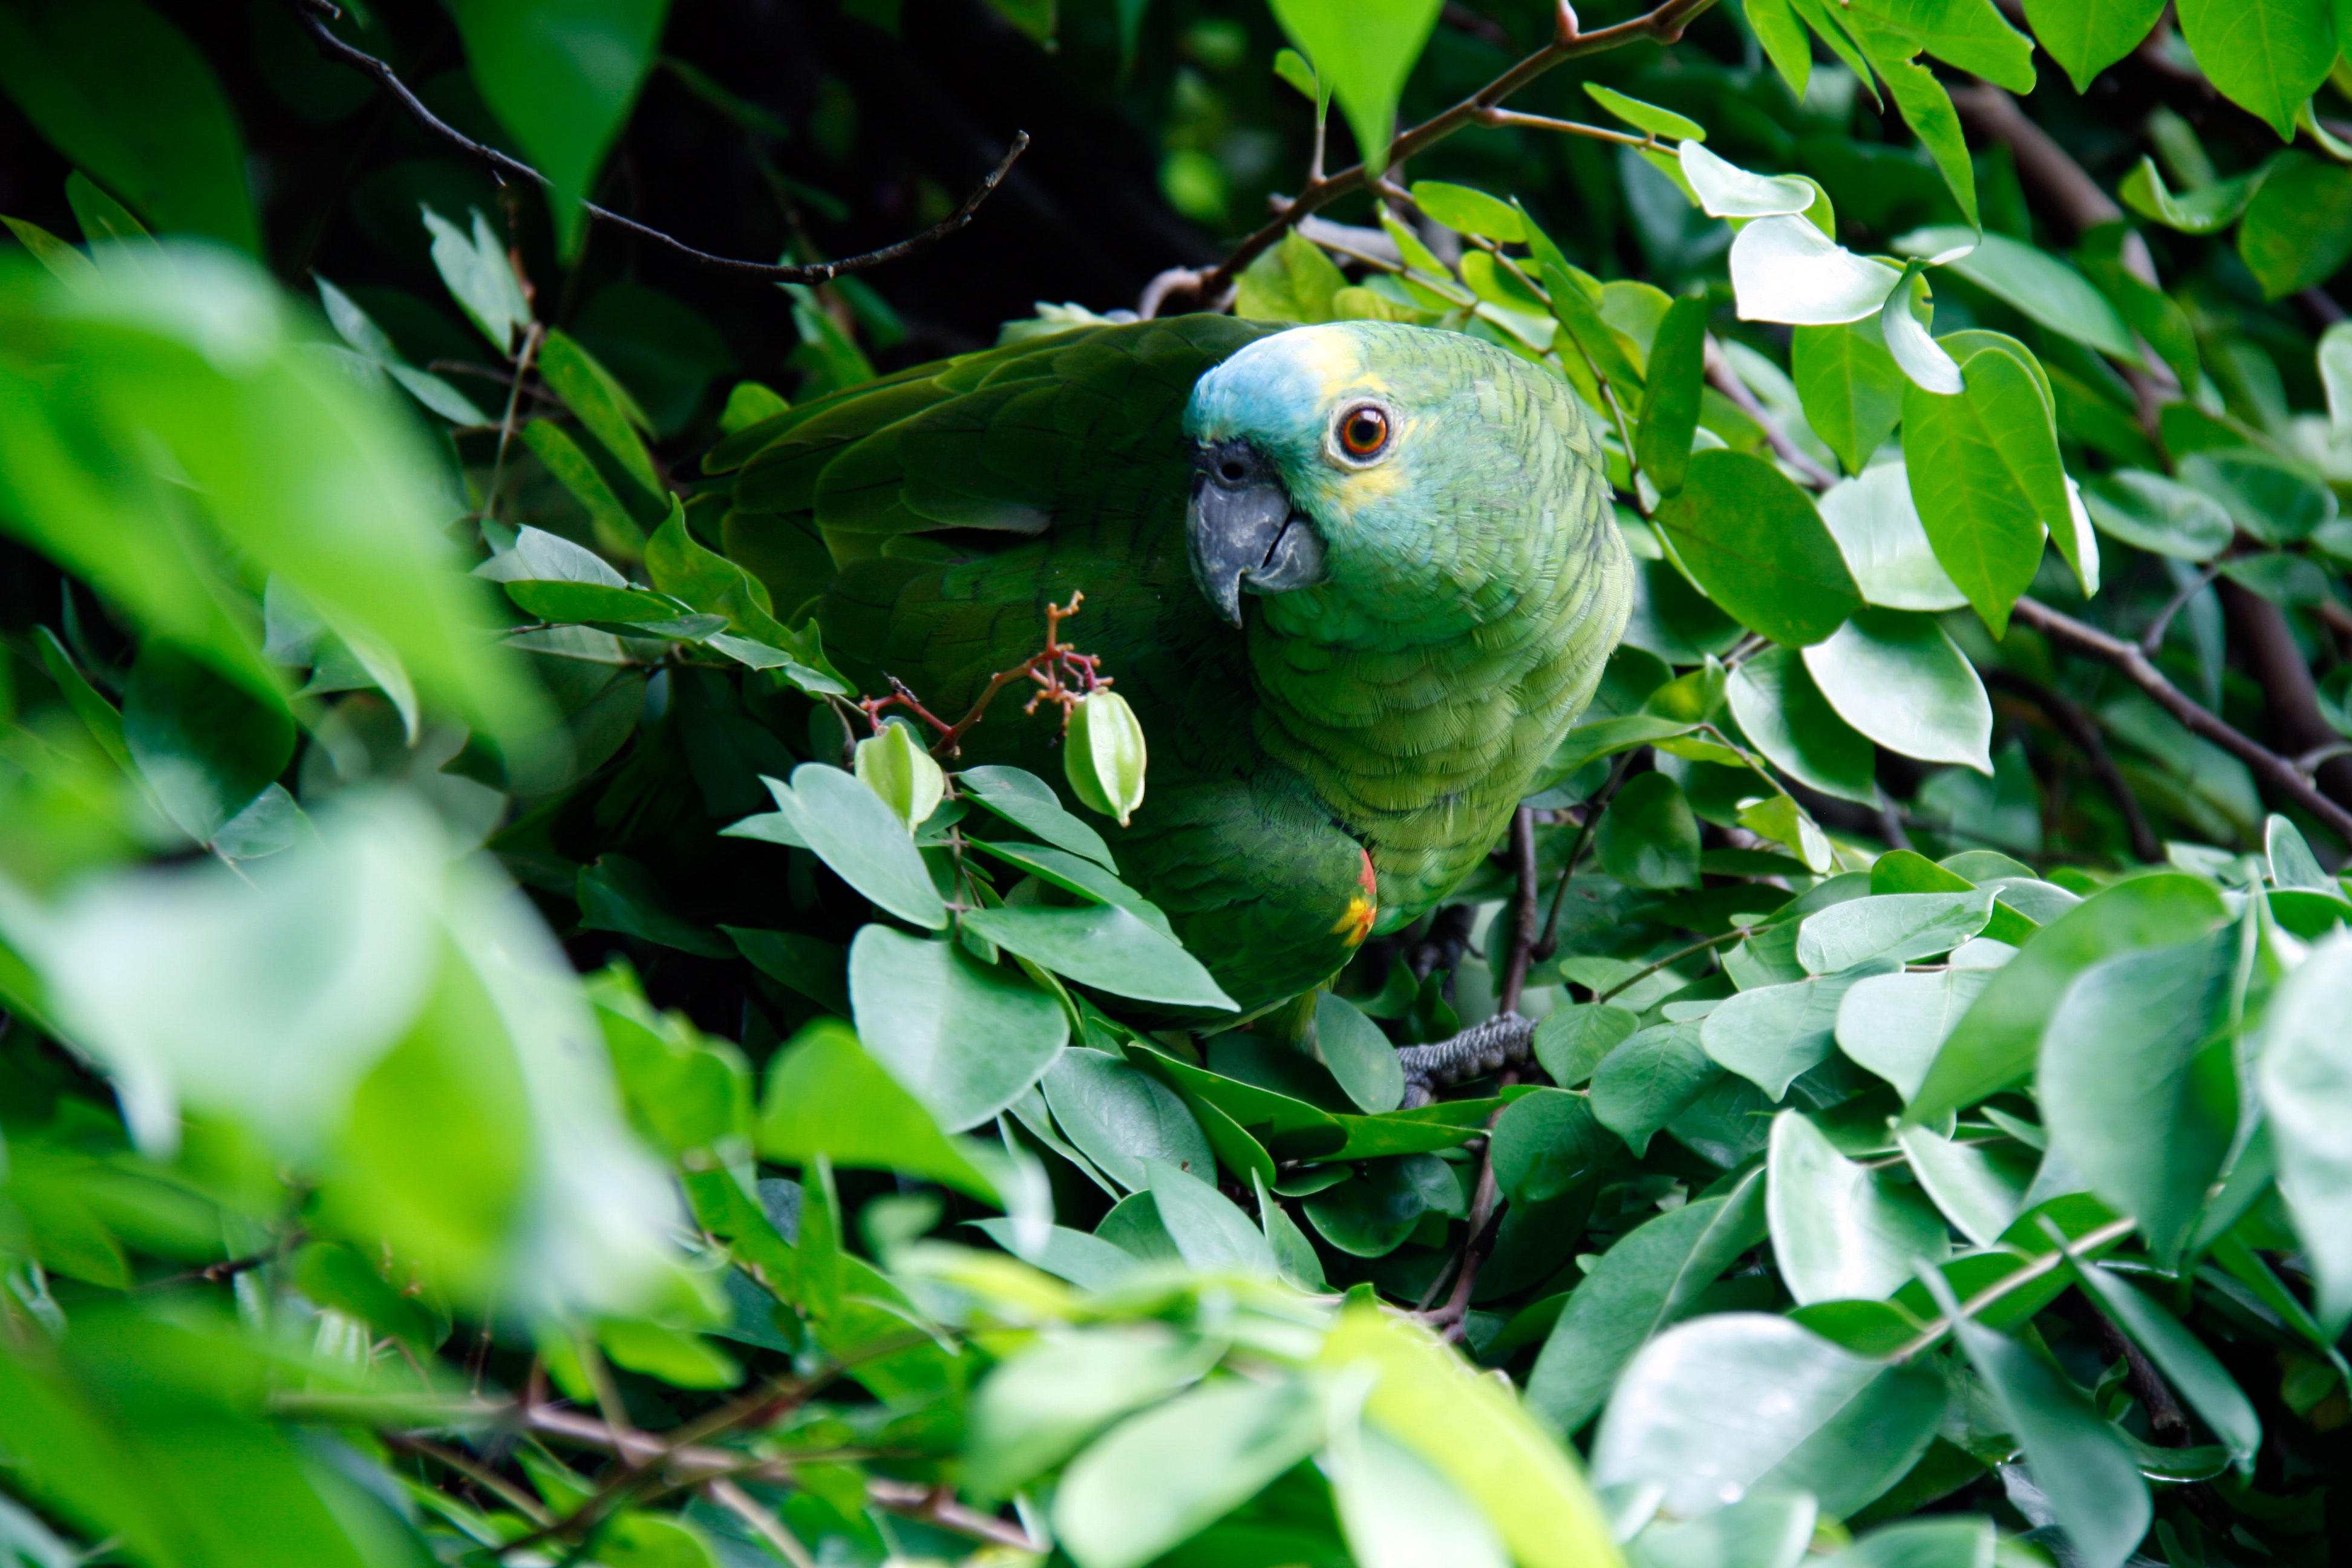 Image of a green bird in Brazil